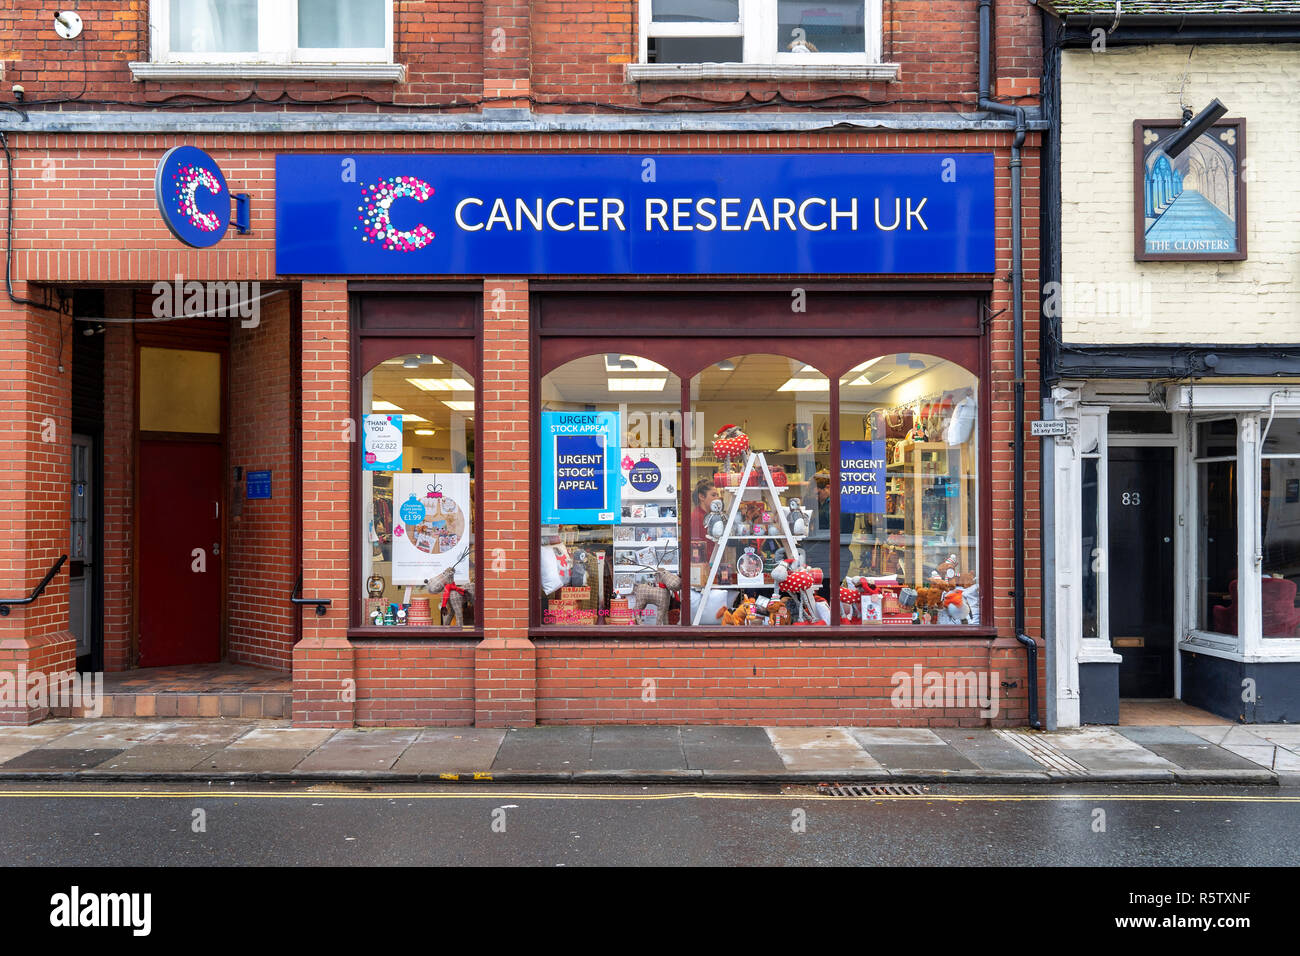 Cancer research charity shop window - Stock Image